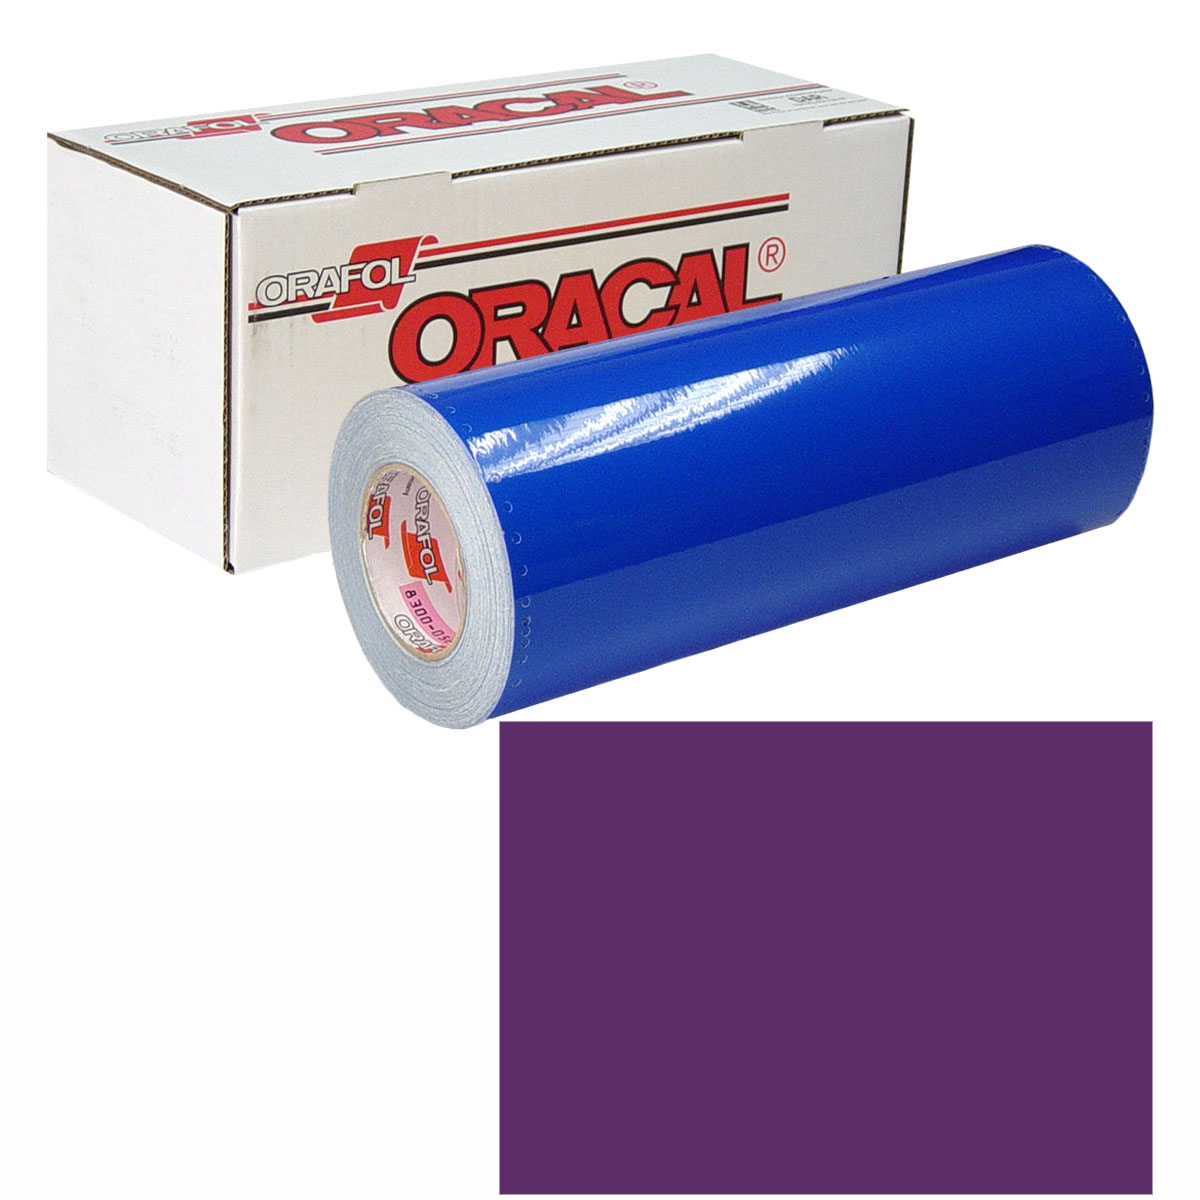 ORACAL 631 15In X 10Yd 040 Violet